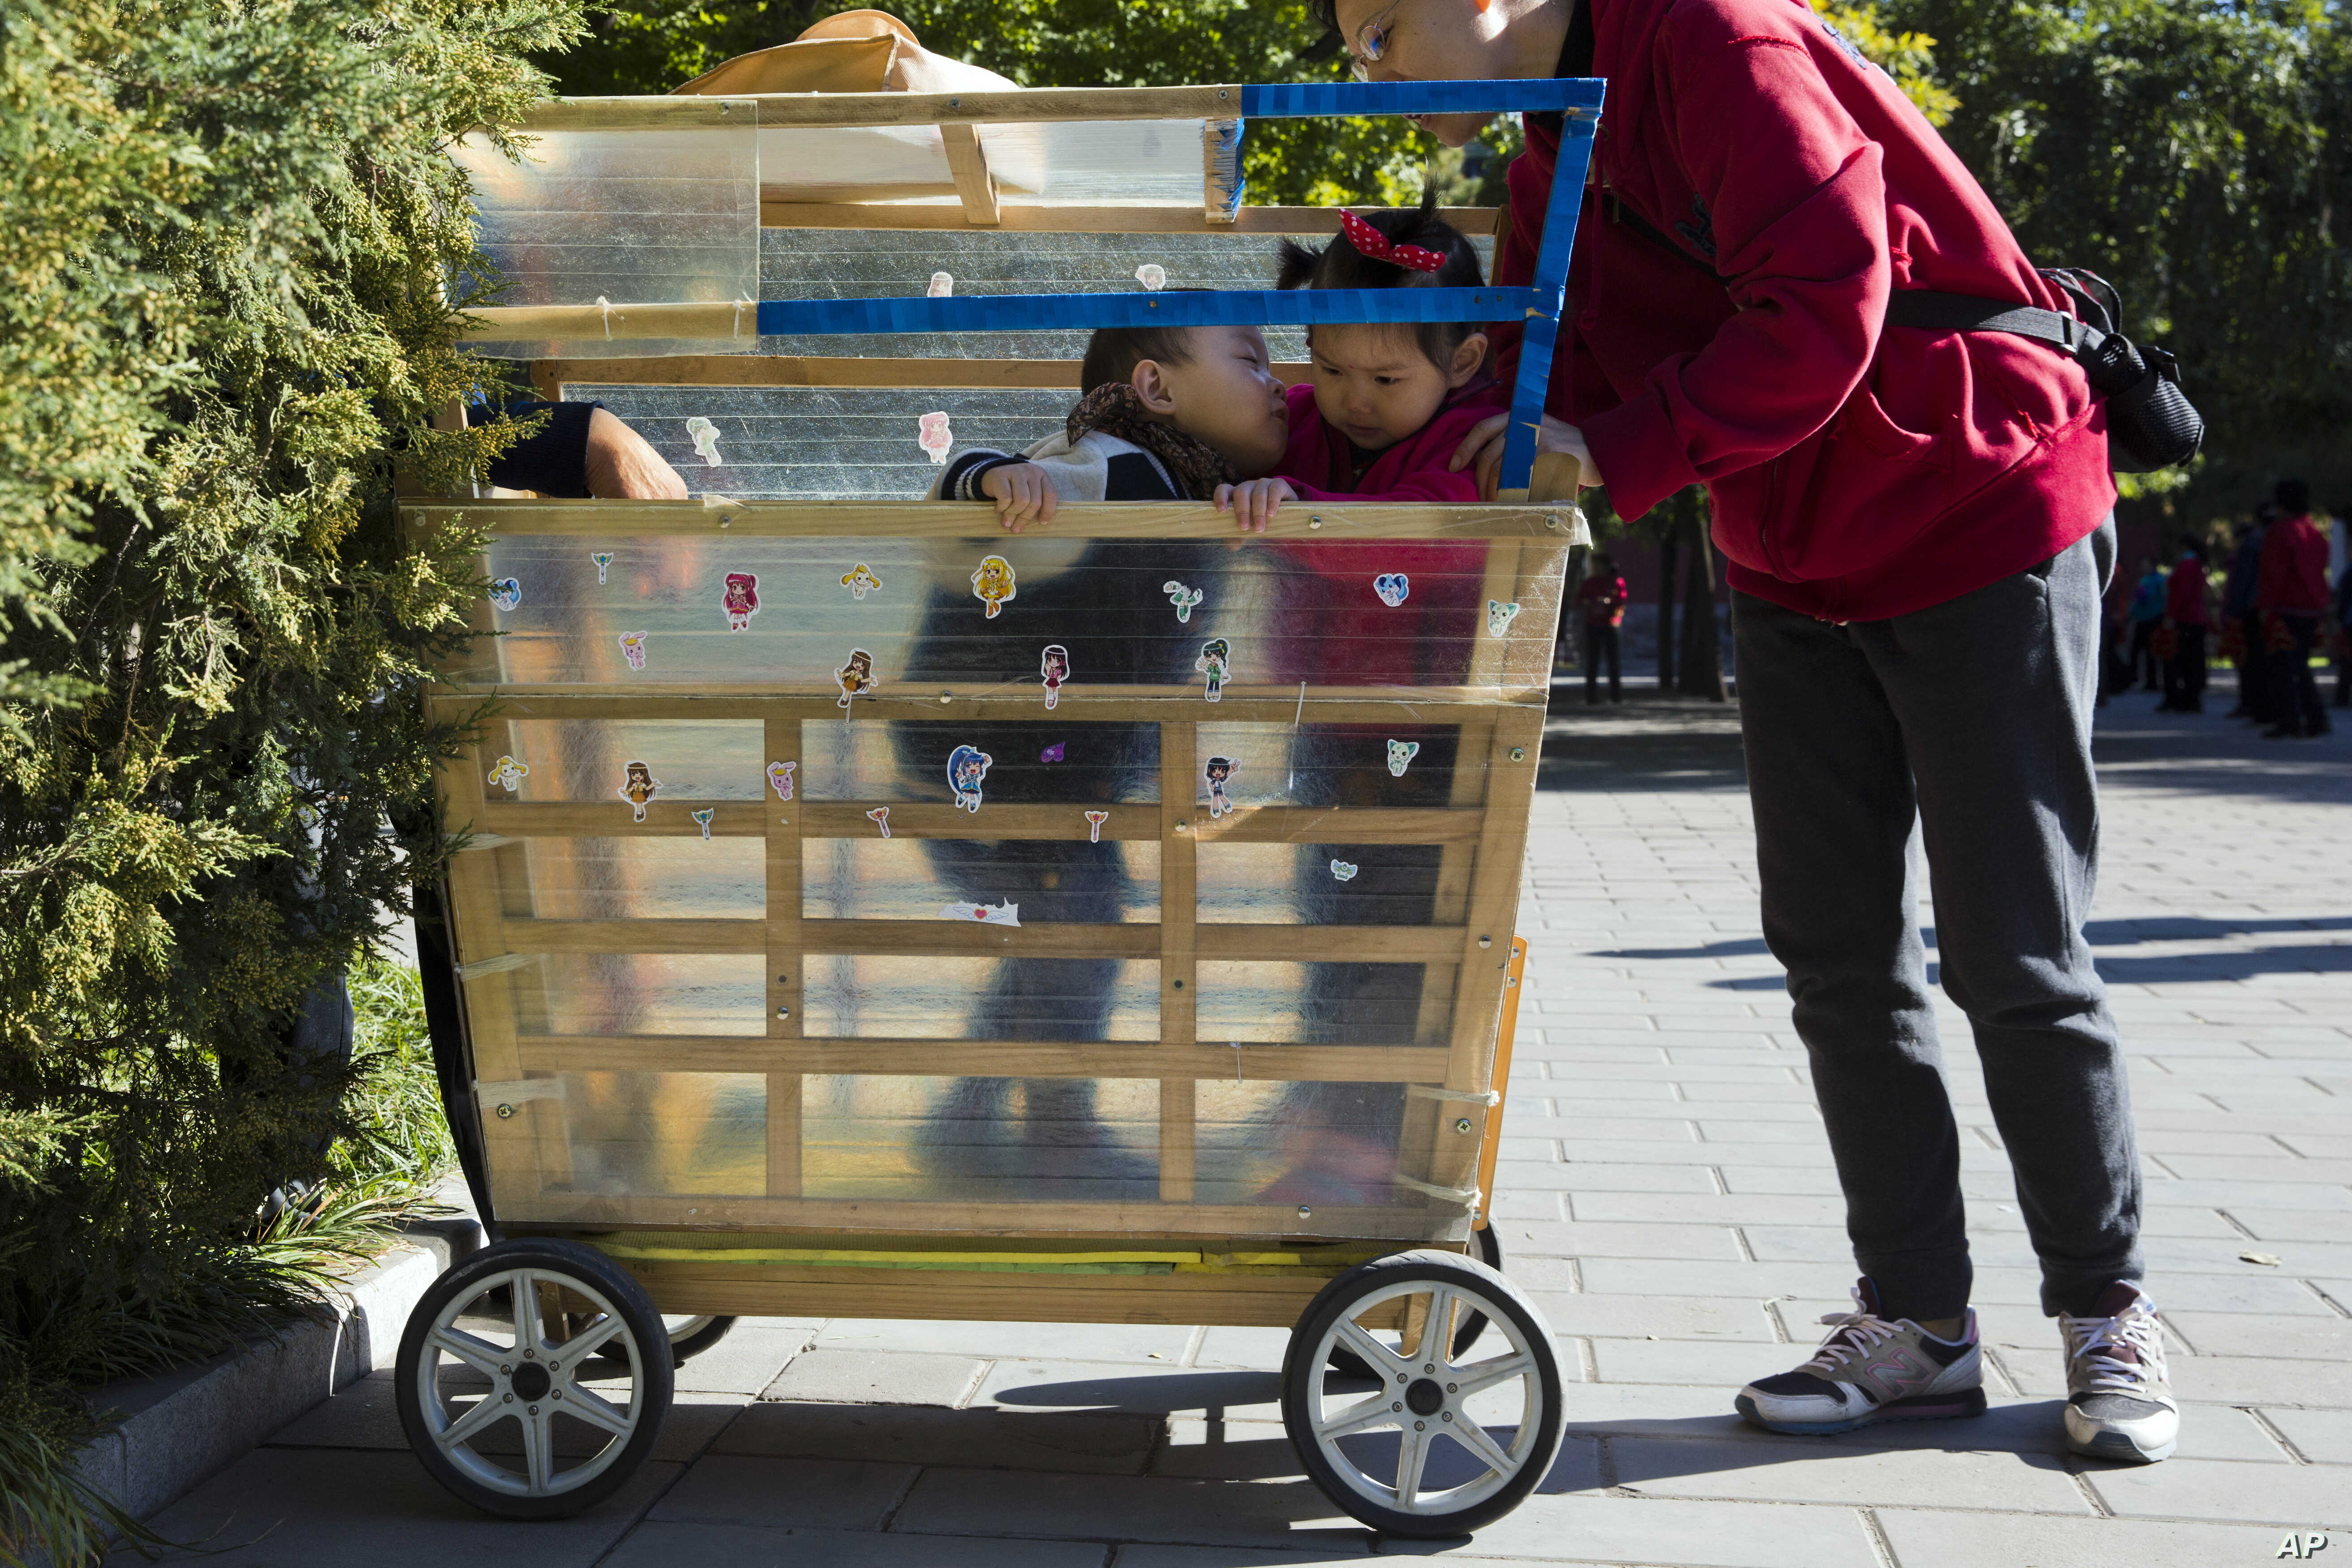 A boy tries to kiss a girl who is placed in his home made stroller in Beijing, China, Oct. 30, 2015.